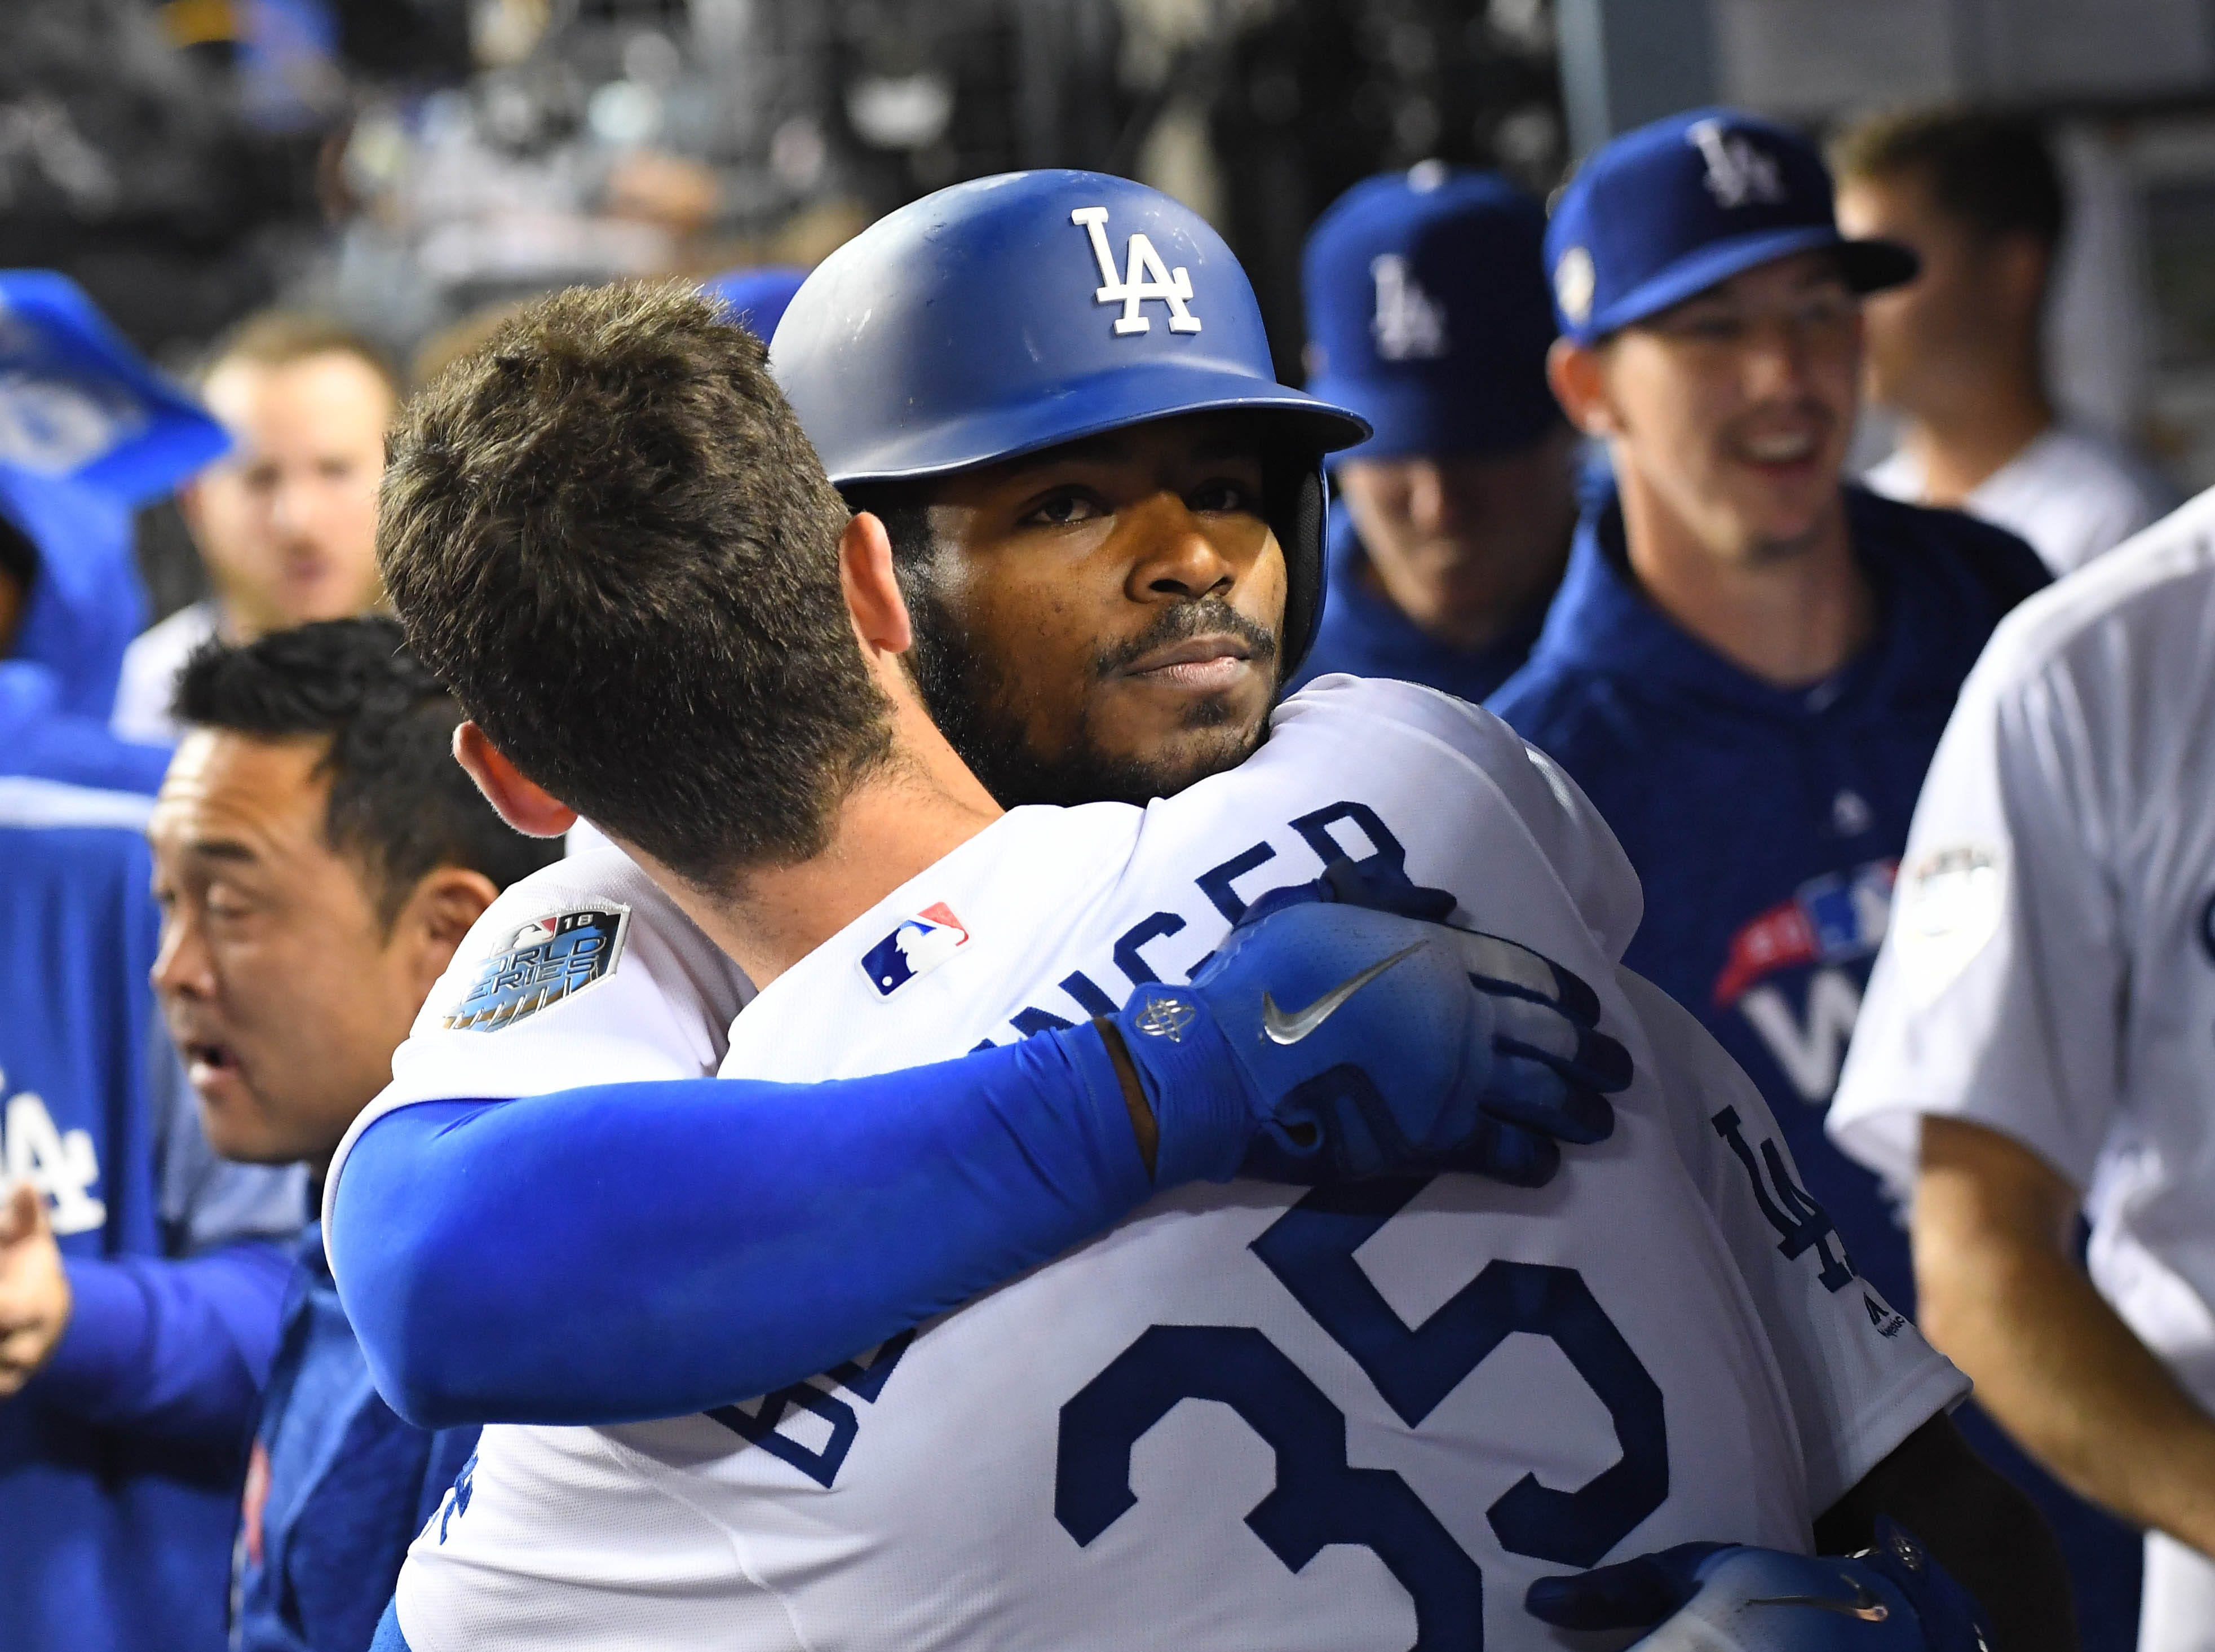 Game 4 at Dodger Stadium: Yasiel Puig celebrates his home run in the dugout with Cody Bellinger.